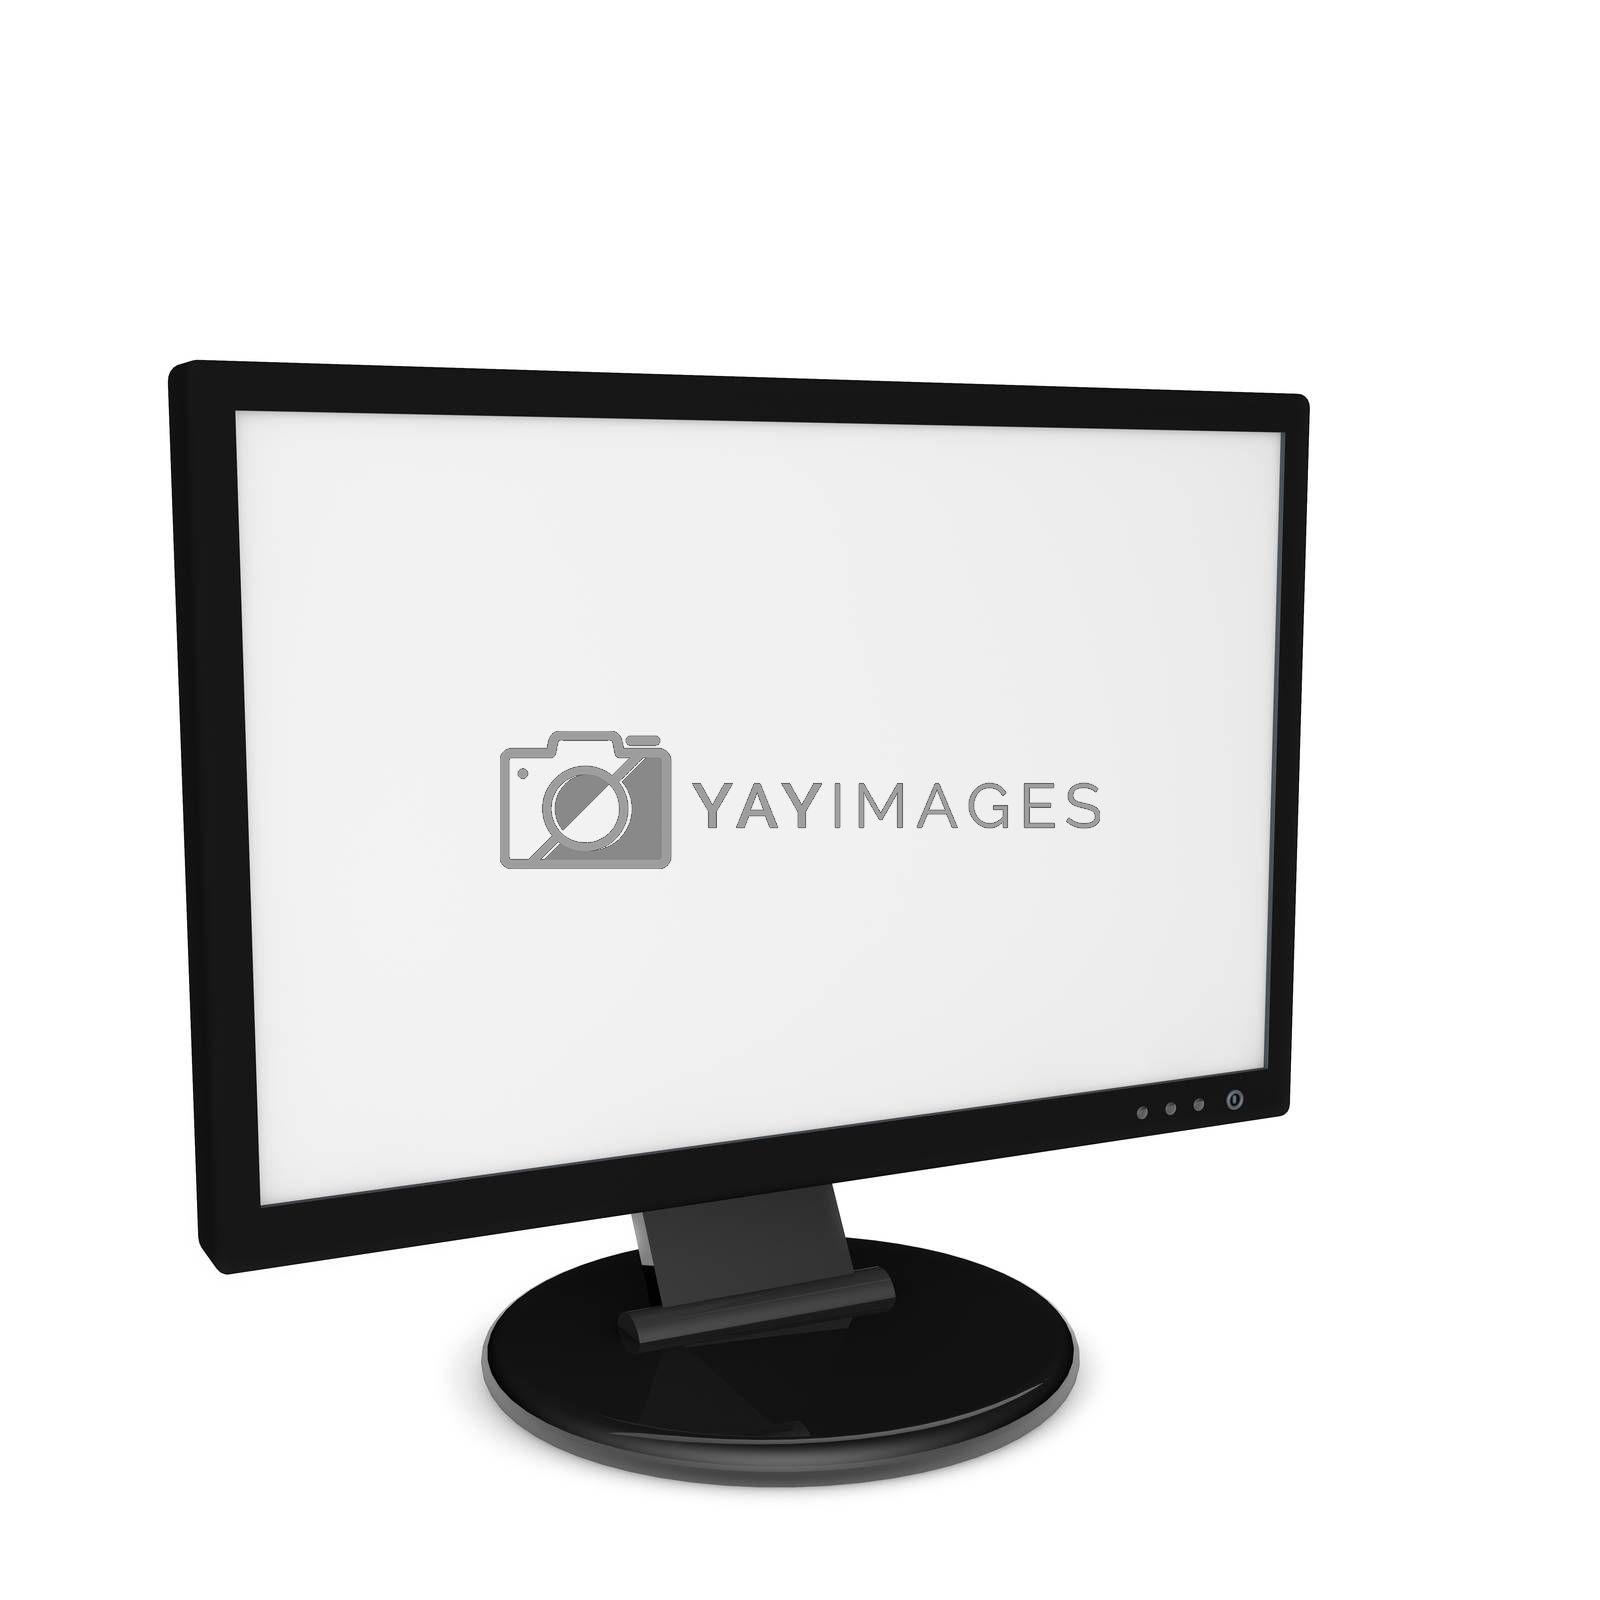 Monitor by ajn